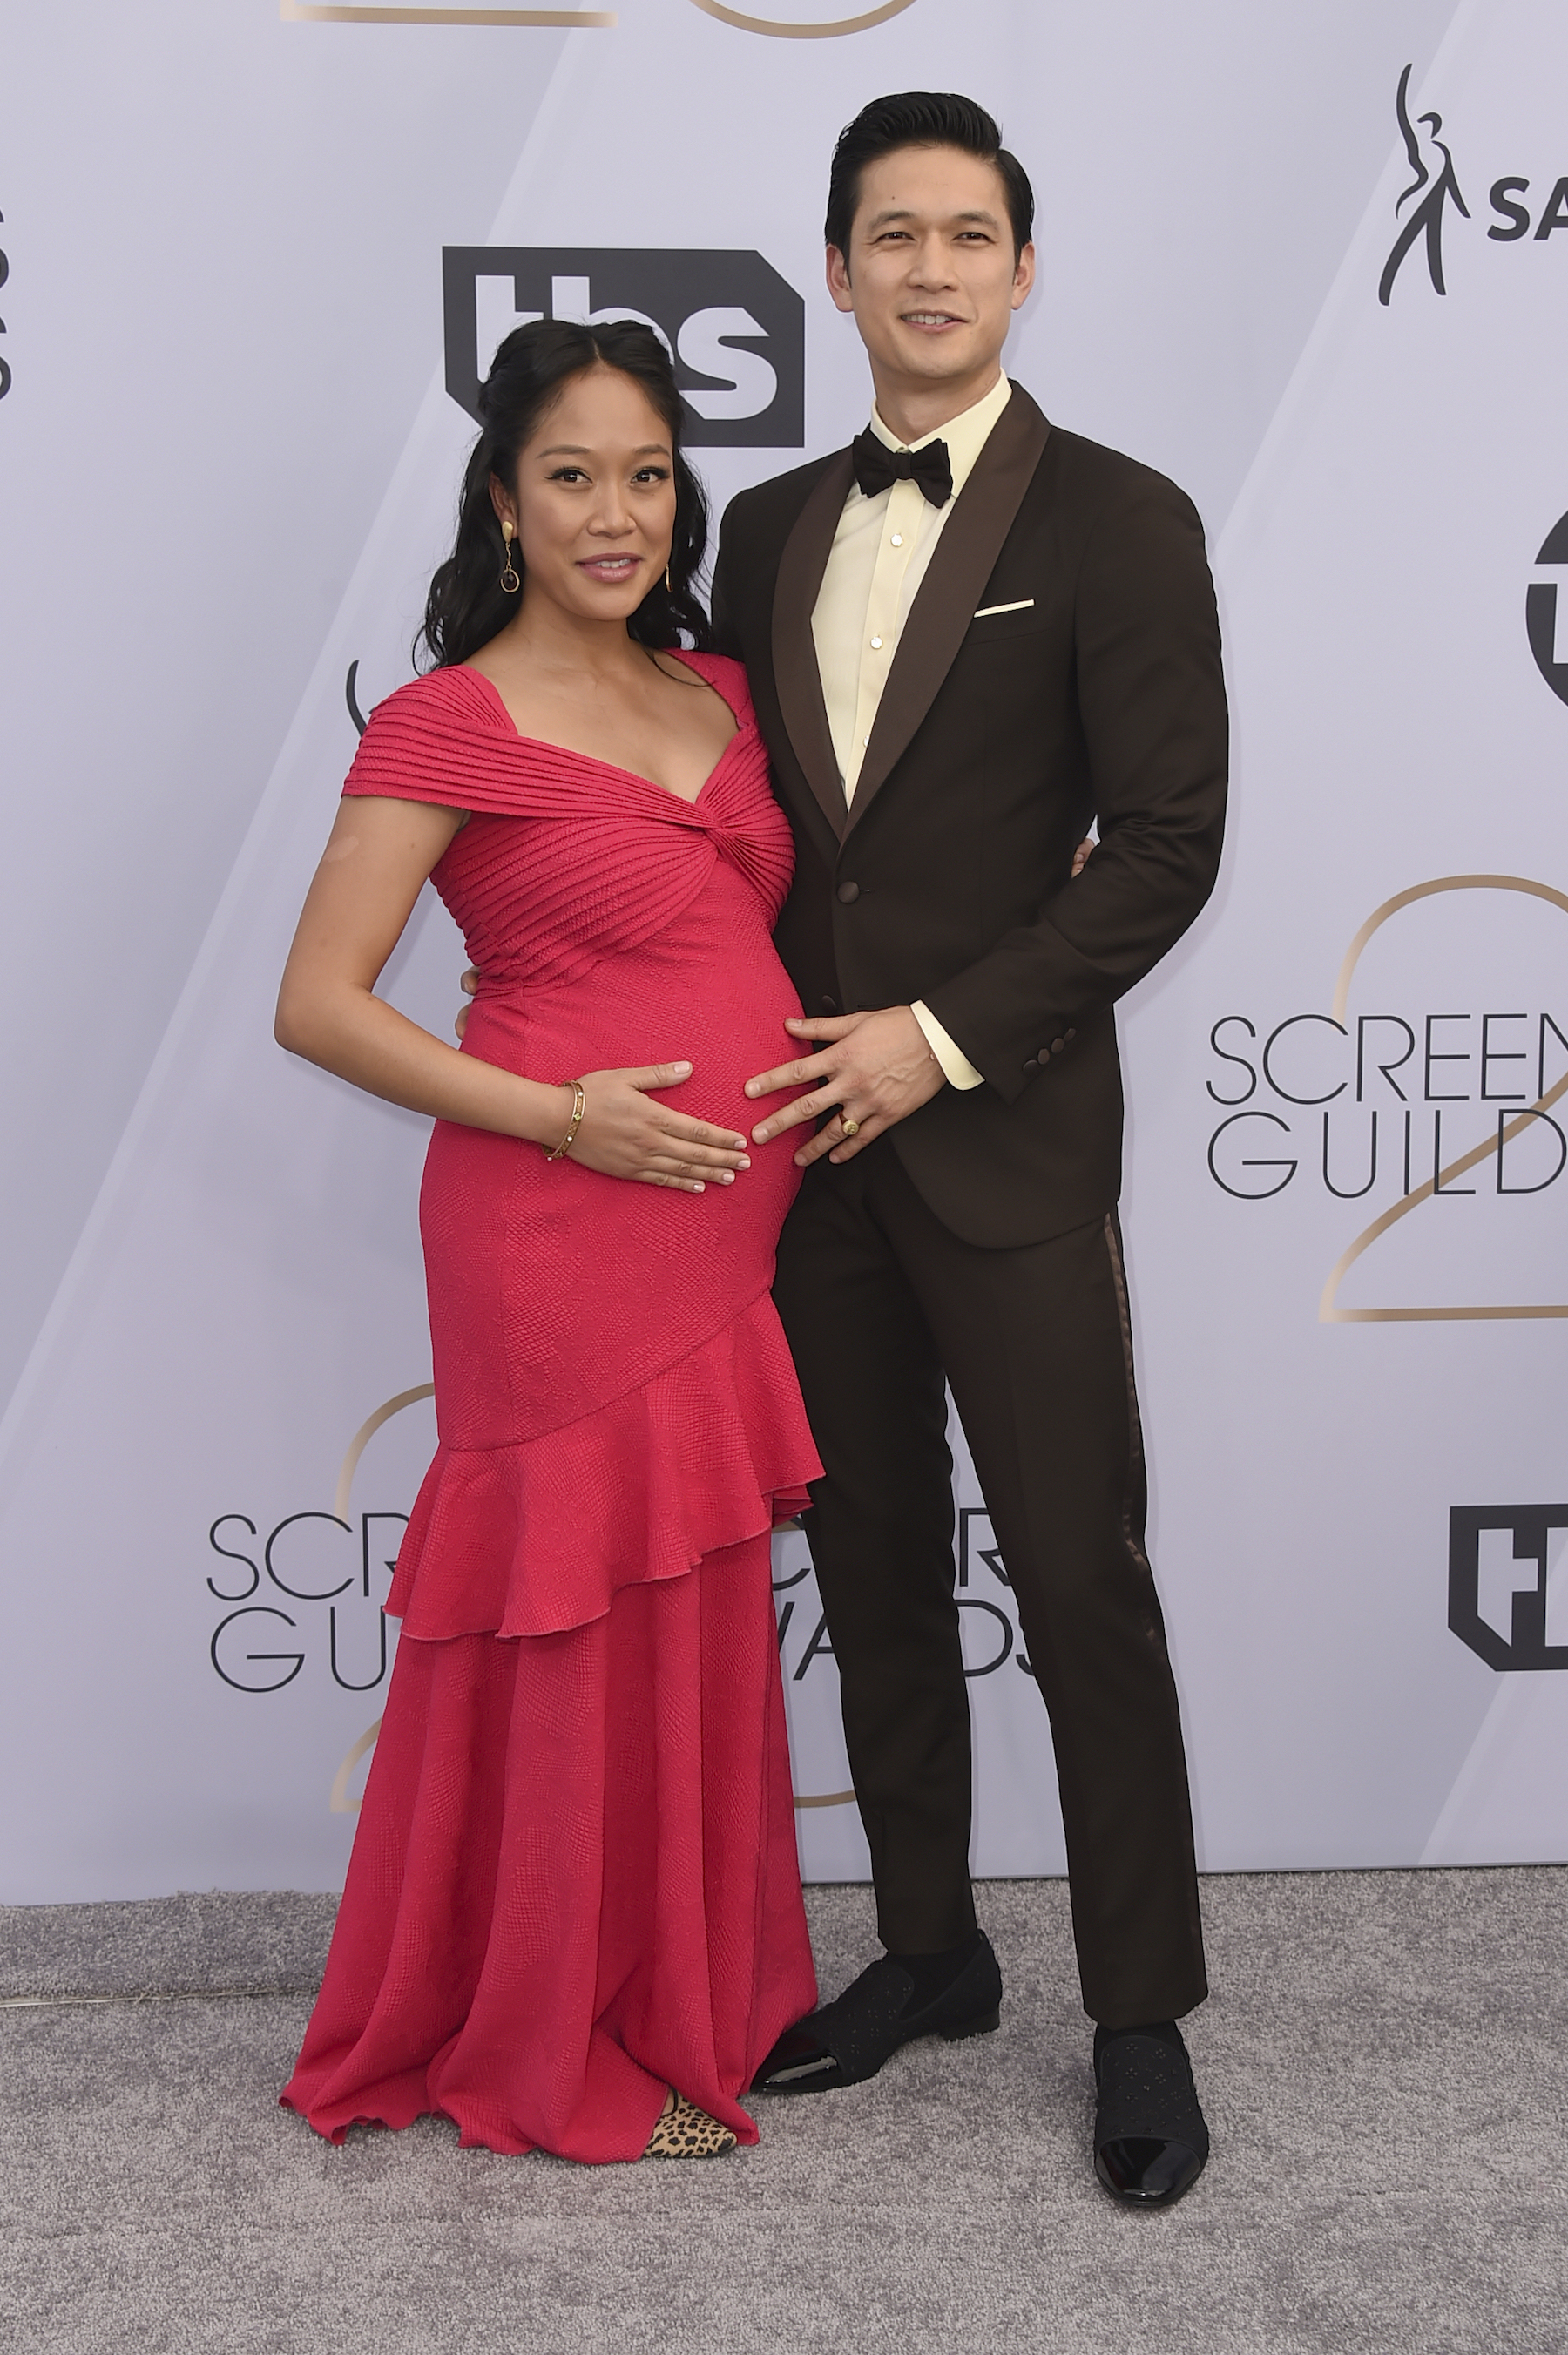 <div class='meta'><div class='origin-logo' data-origin='AP'></div><span class='caption-text' data-credit='Jordan Strauss/Invision/AP'>Shelby Rabara, left, and Harry Shum Jr. arrive at the 25th annual Screen Actors Guild Awards at the Shrine Auditorium & Expo Hall on Sunday, Jan. 27, 2019, in Los Angeles.</span></div>